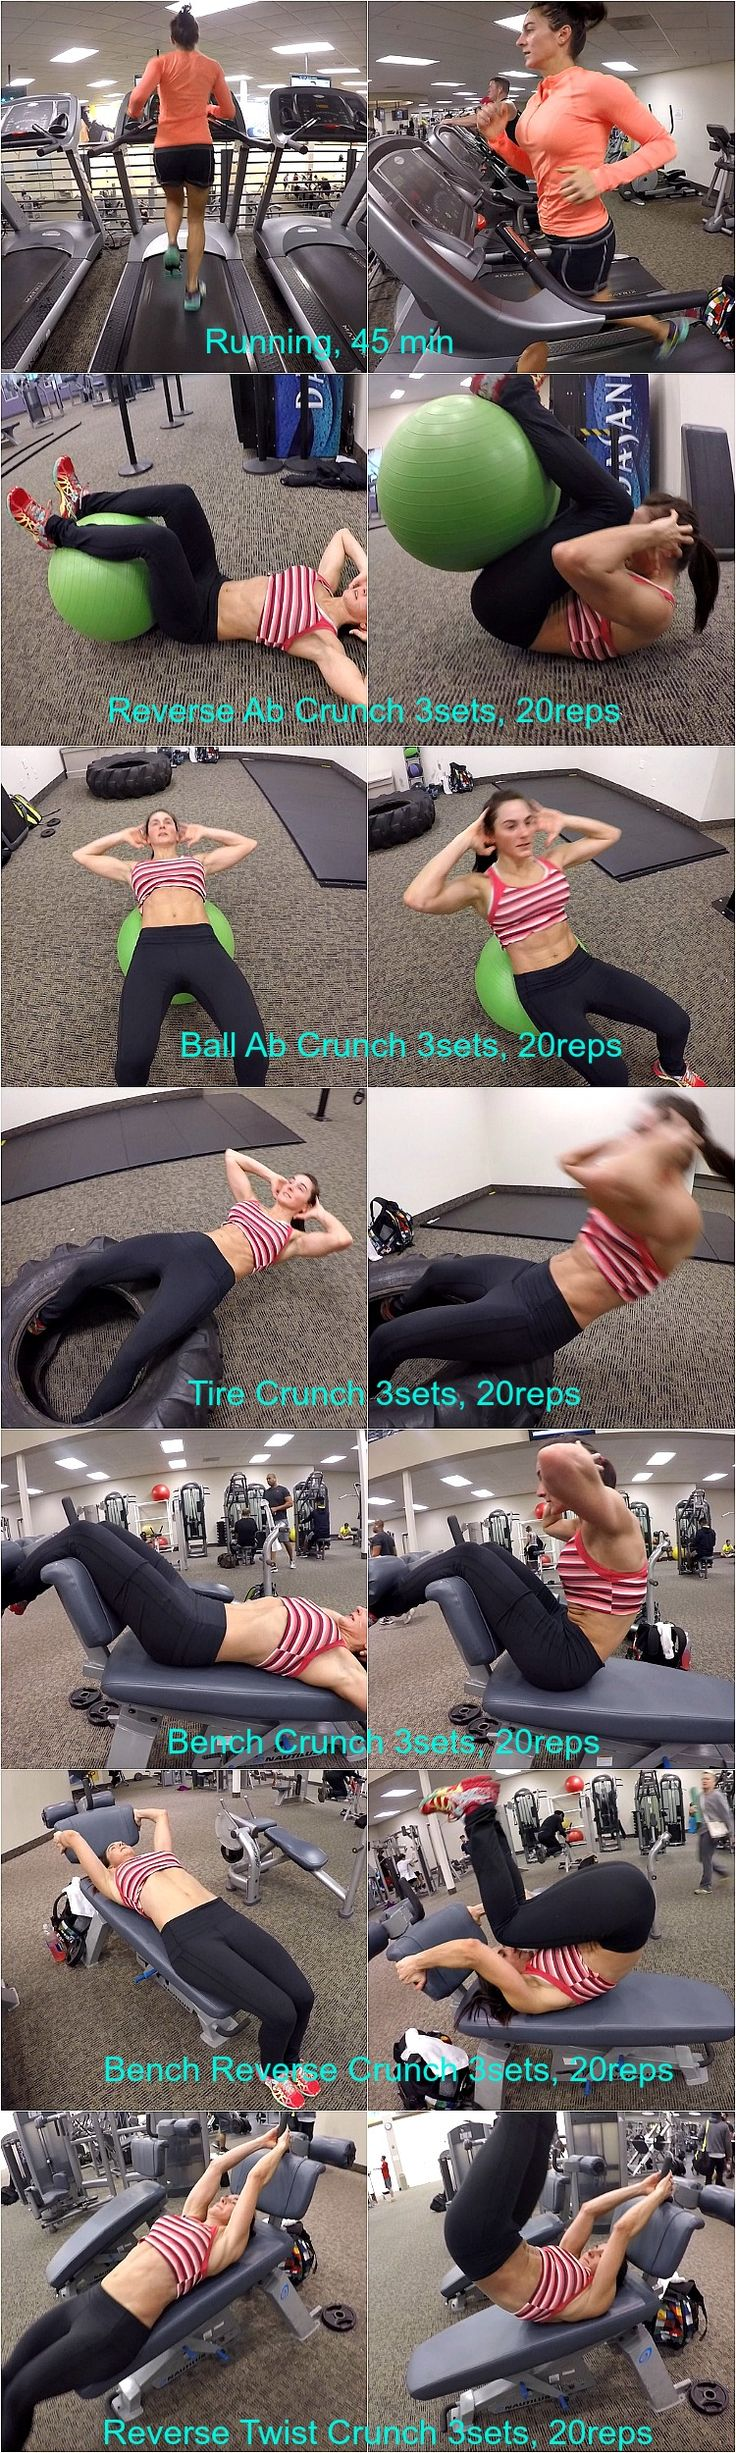 10 Weeks To Fit-Day 20: Active Rest Running/Abs